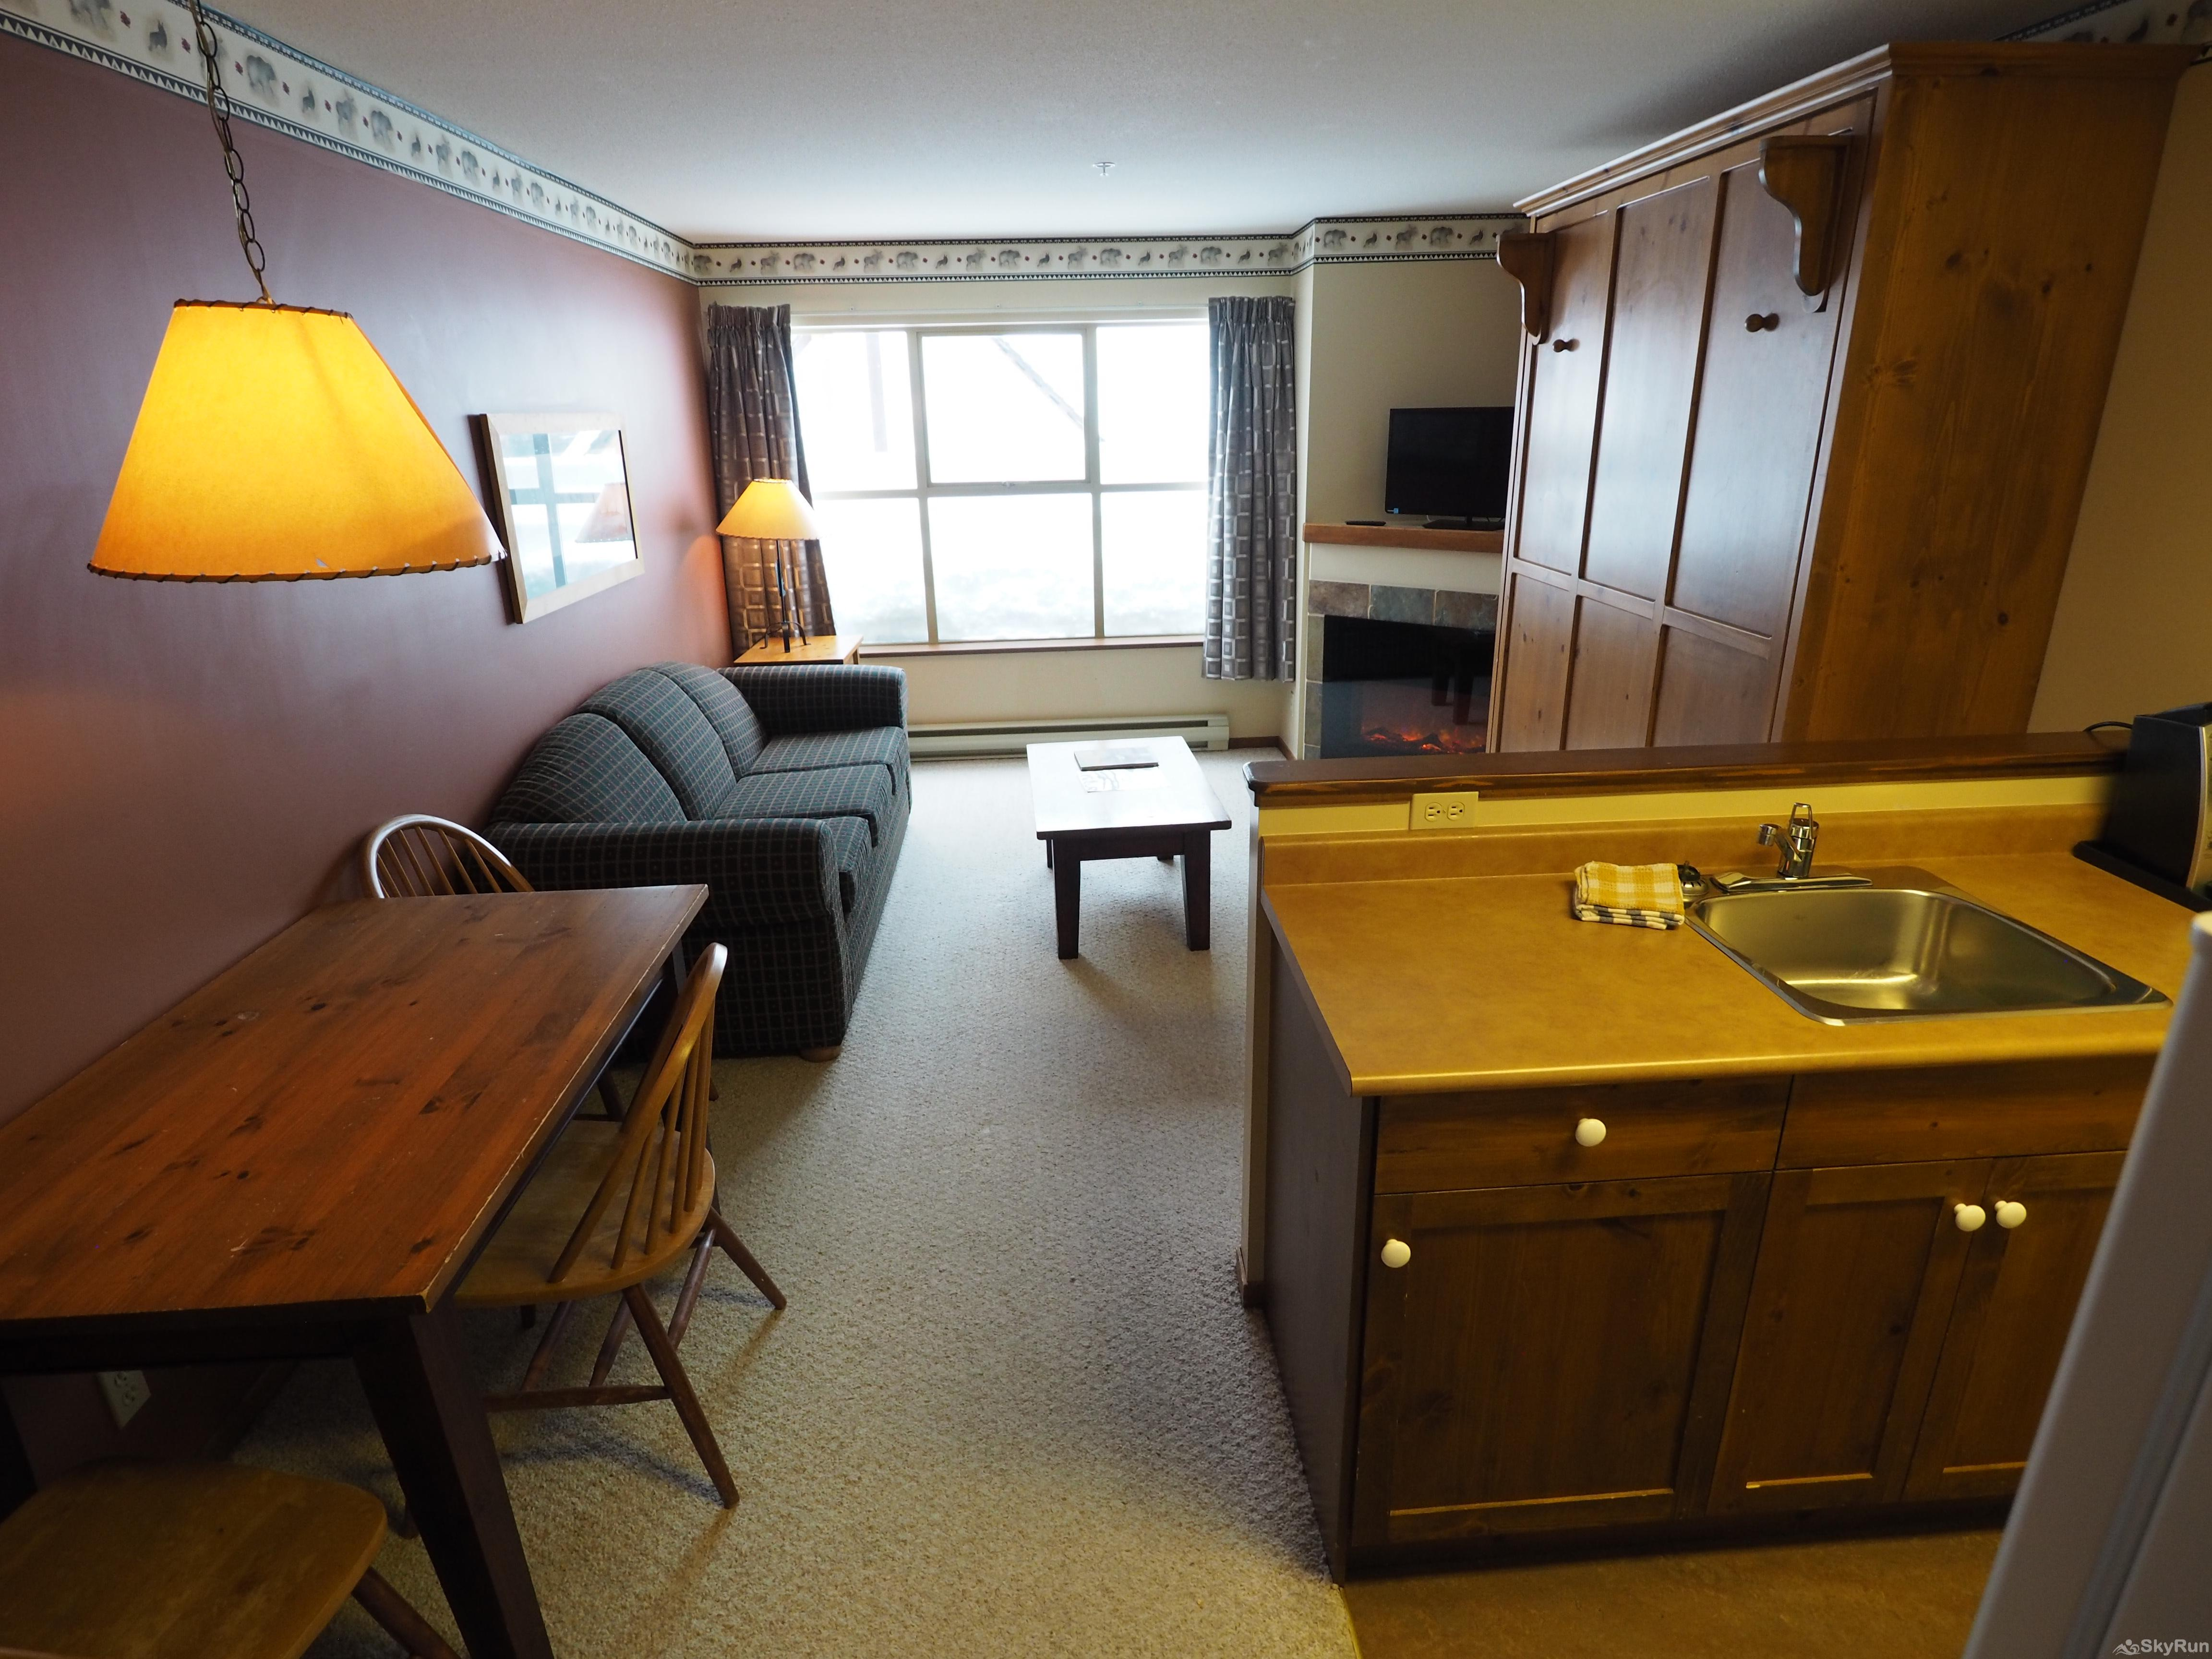 Apex Mountain Inn 1 BDRM Suite 211-212 Dining room